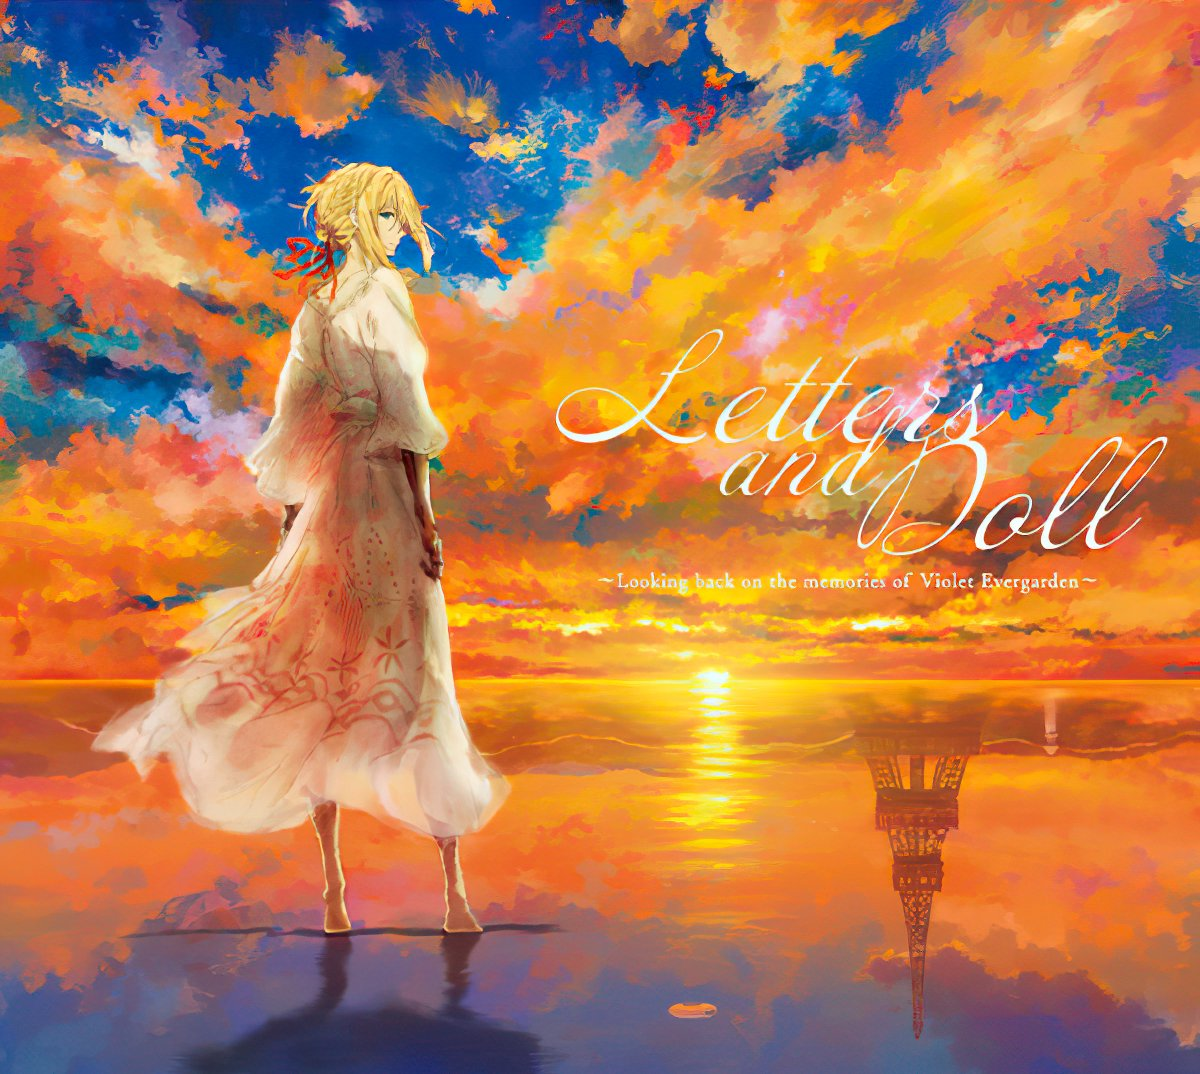 Cover image of『Yui Ishikawa (Violet Evergarden)Colored Memories』from the Album『』